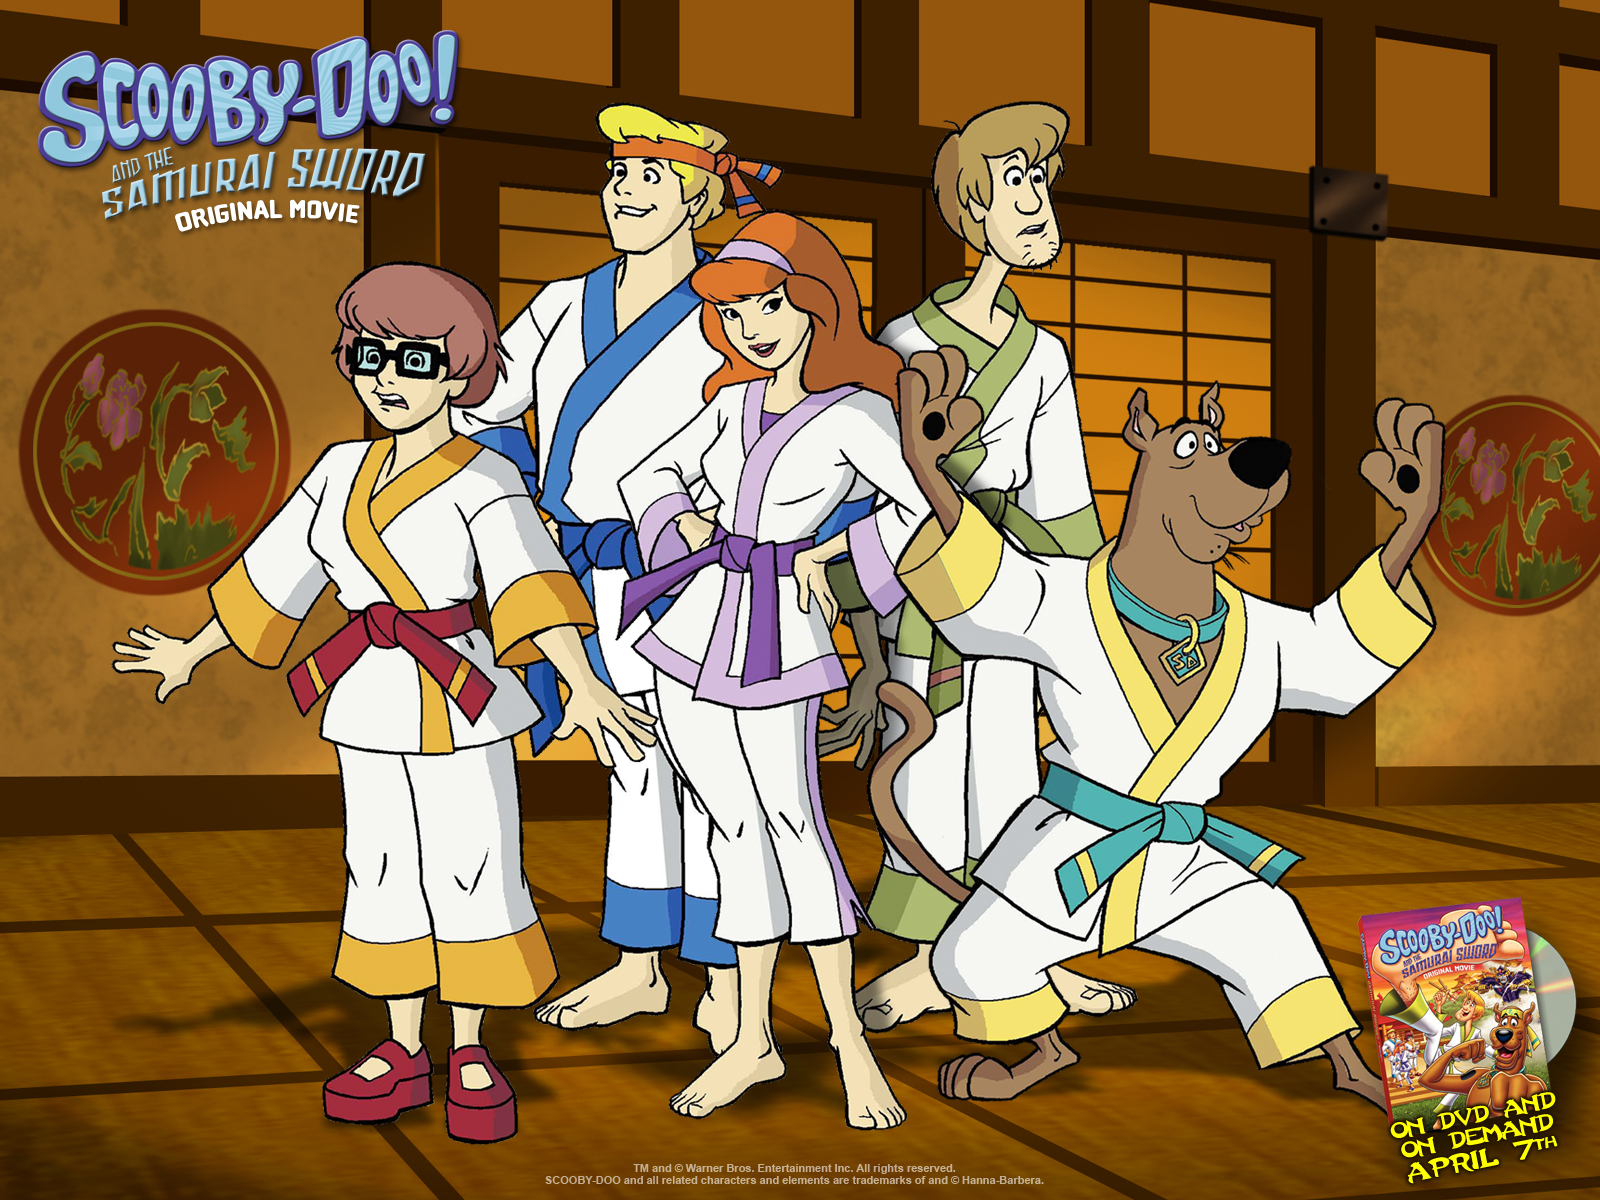 Scooby Doo & The Samurai Sawd